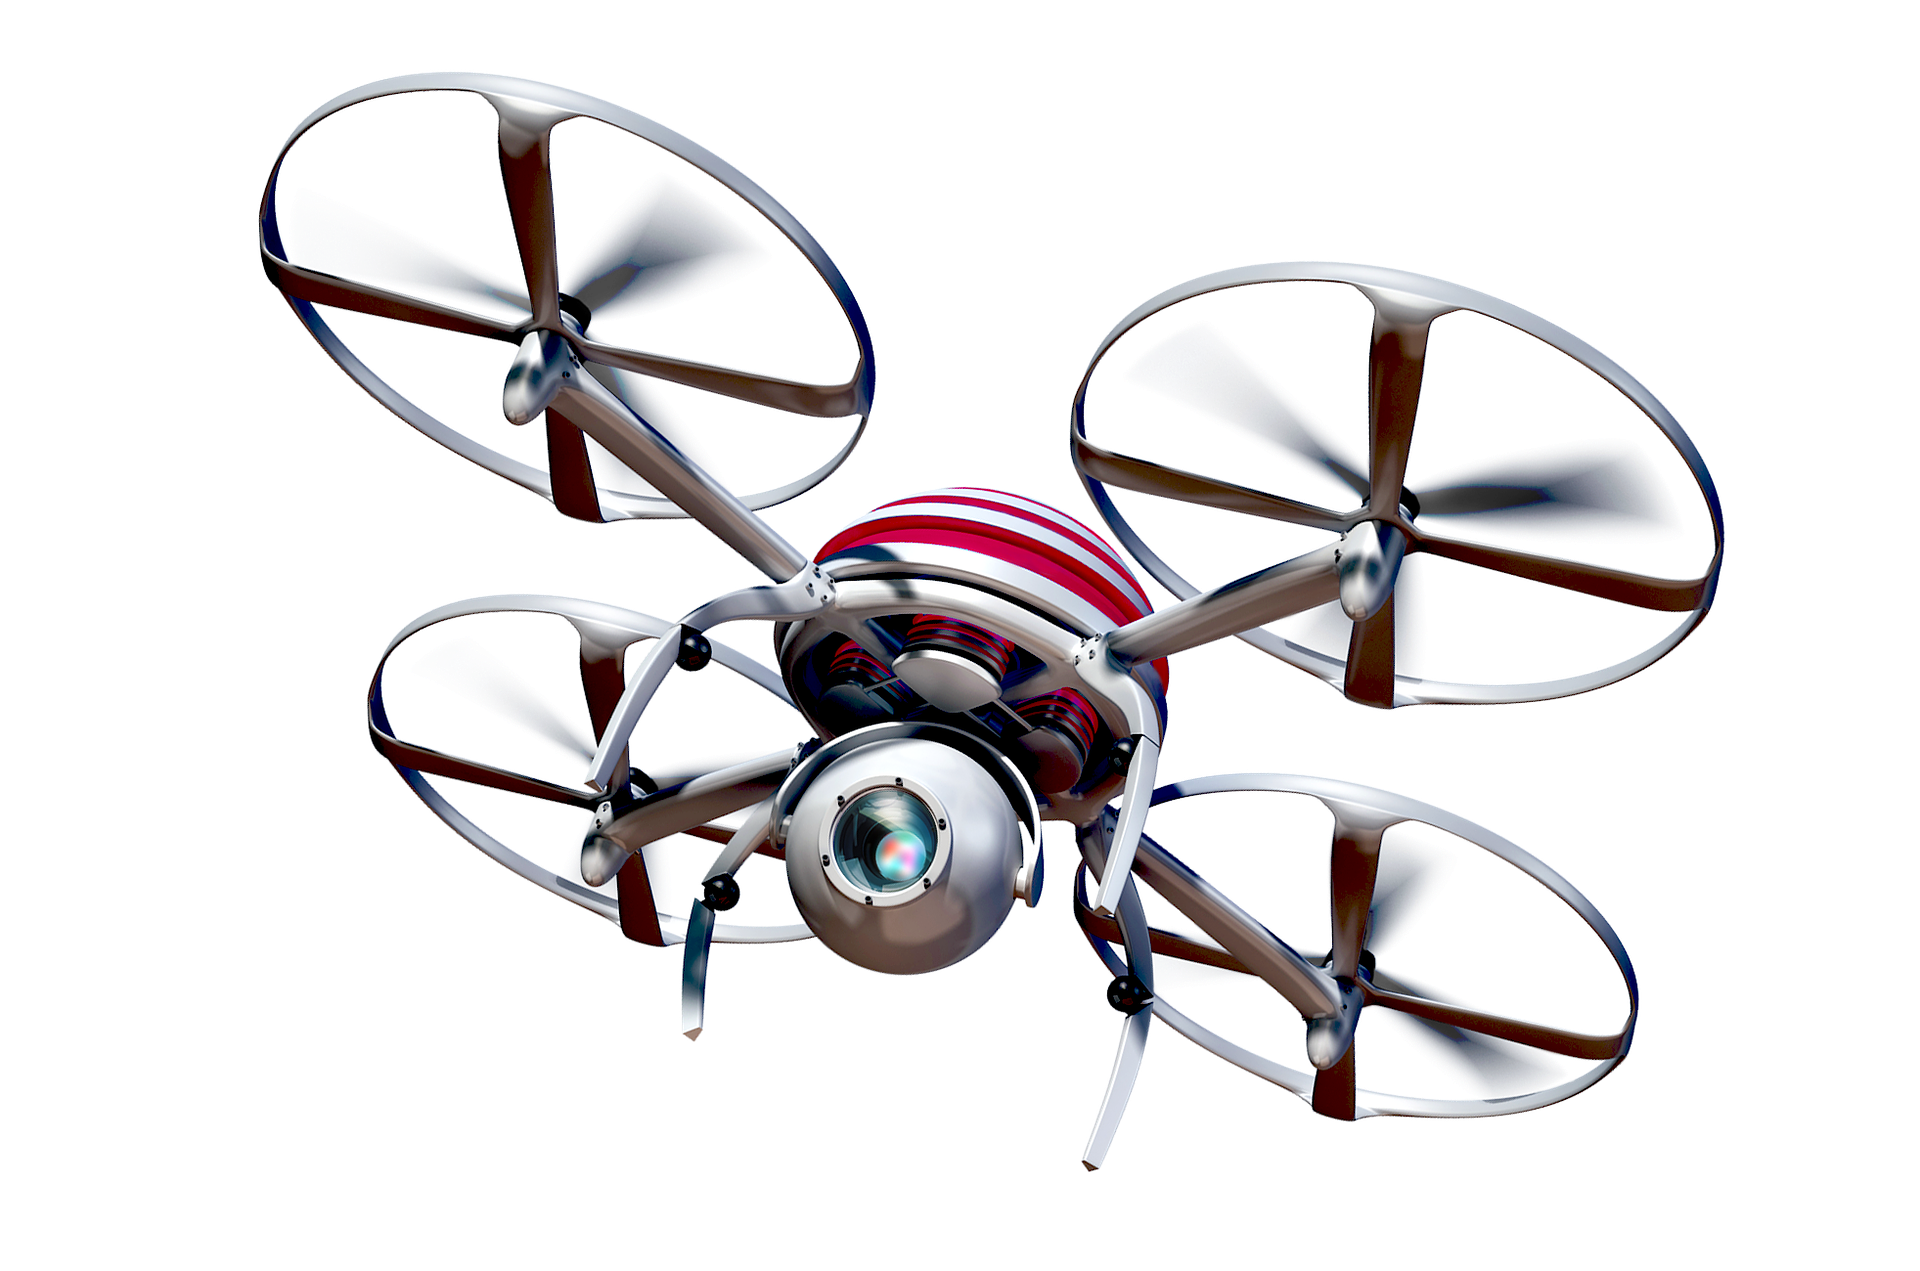 quadcopter flying telemedicine camera drone